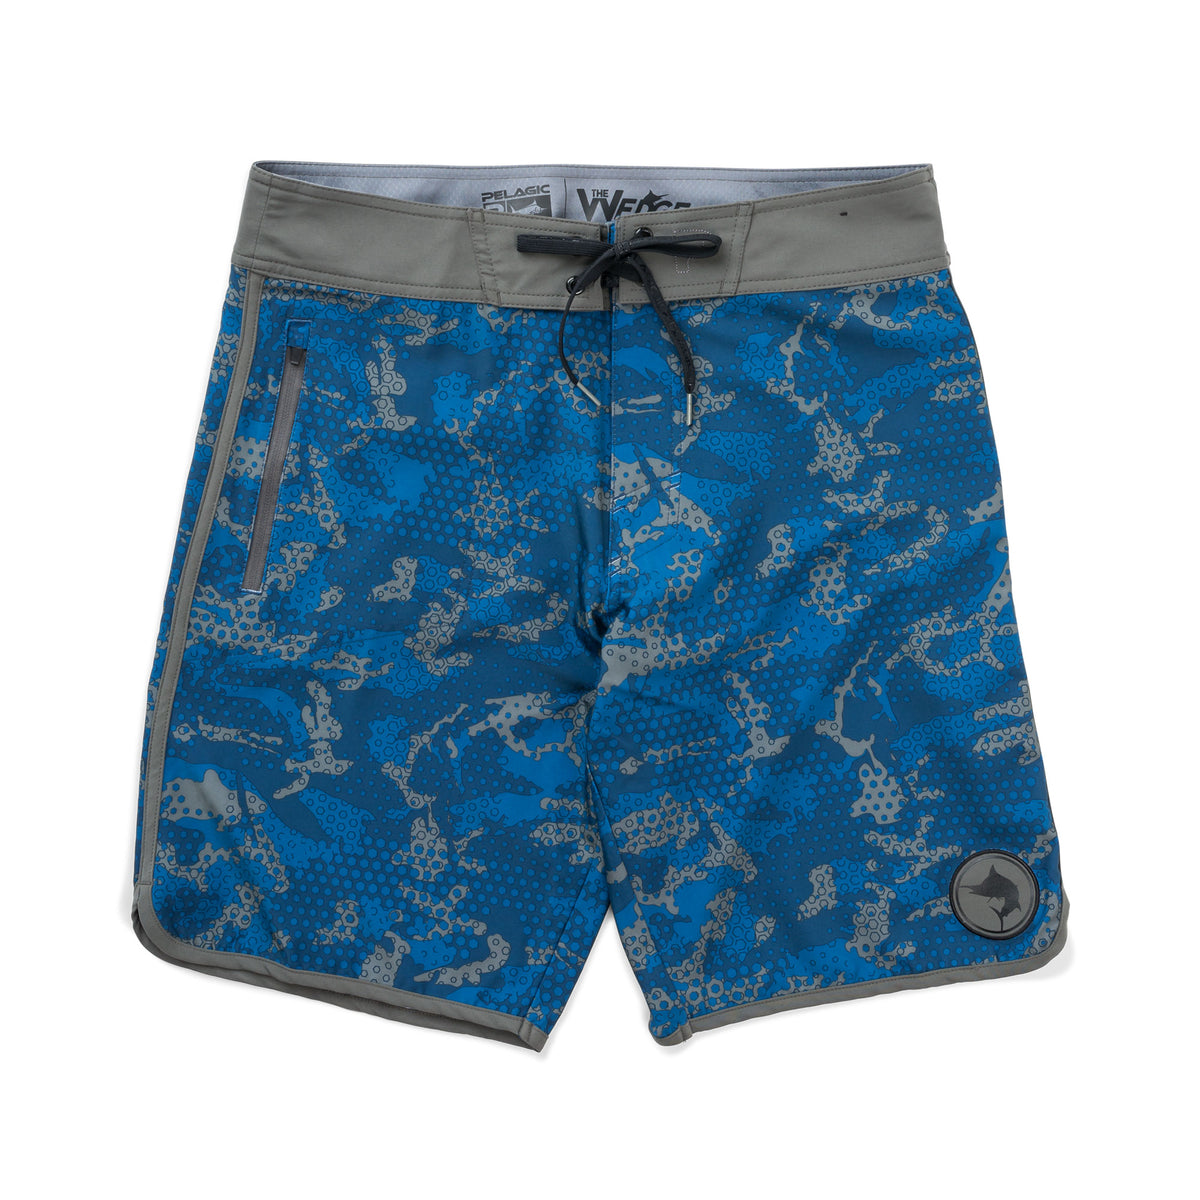 Wedge Boardshorts Big Image - 1